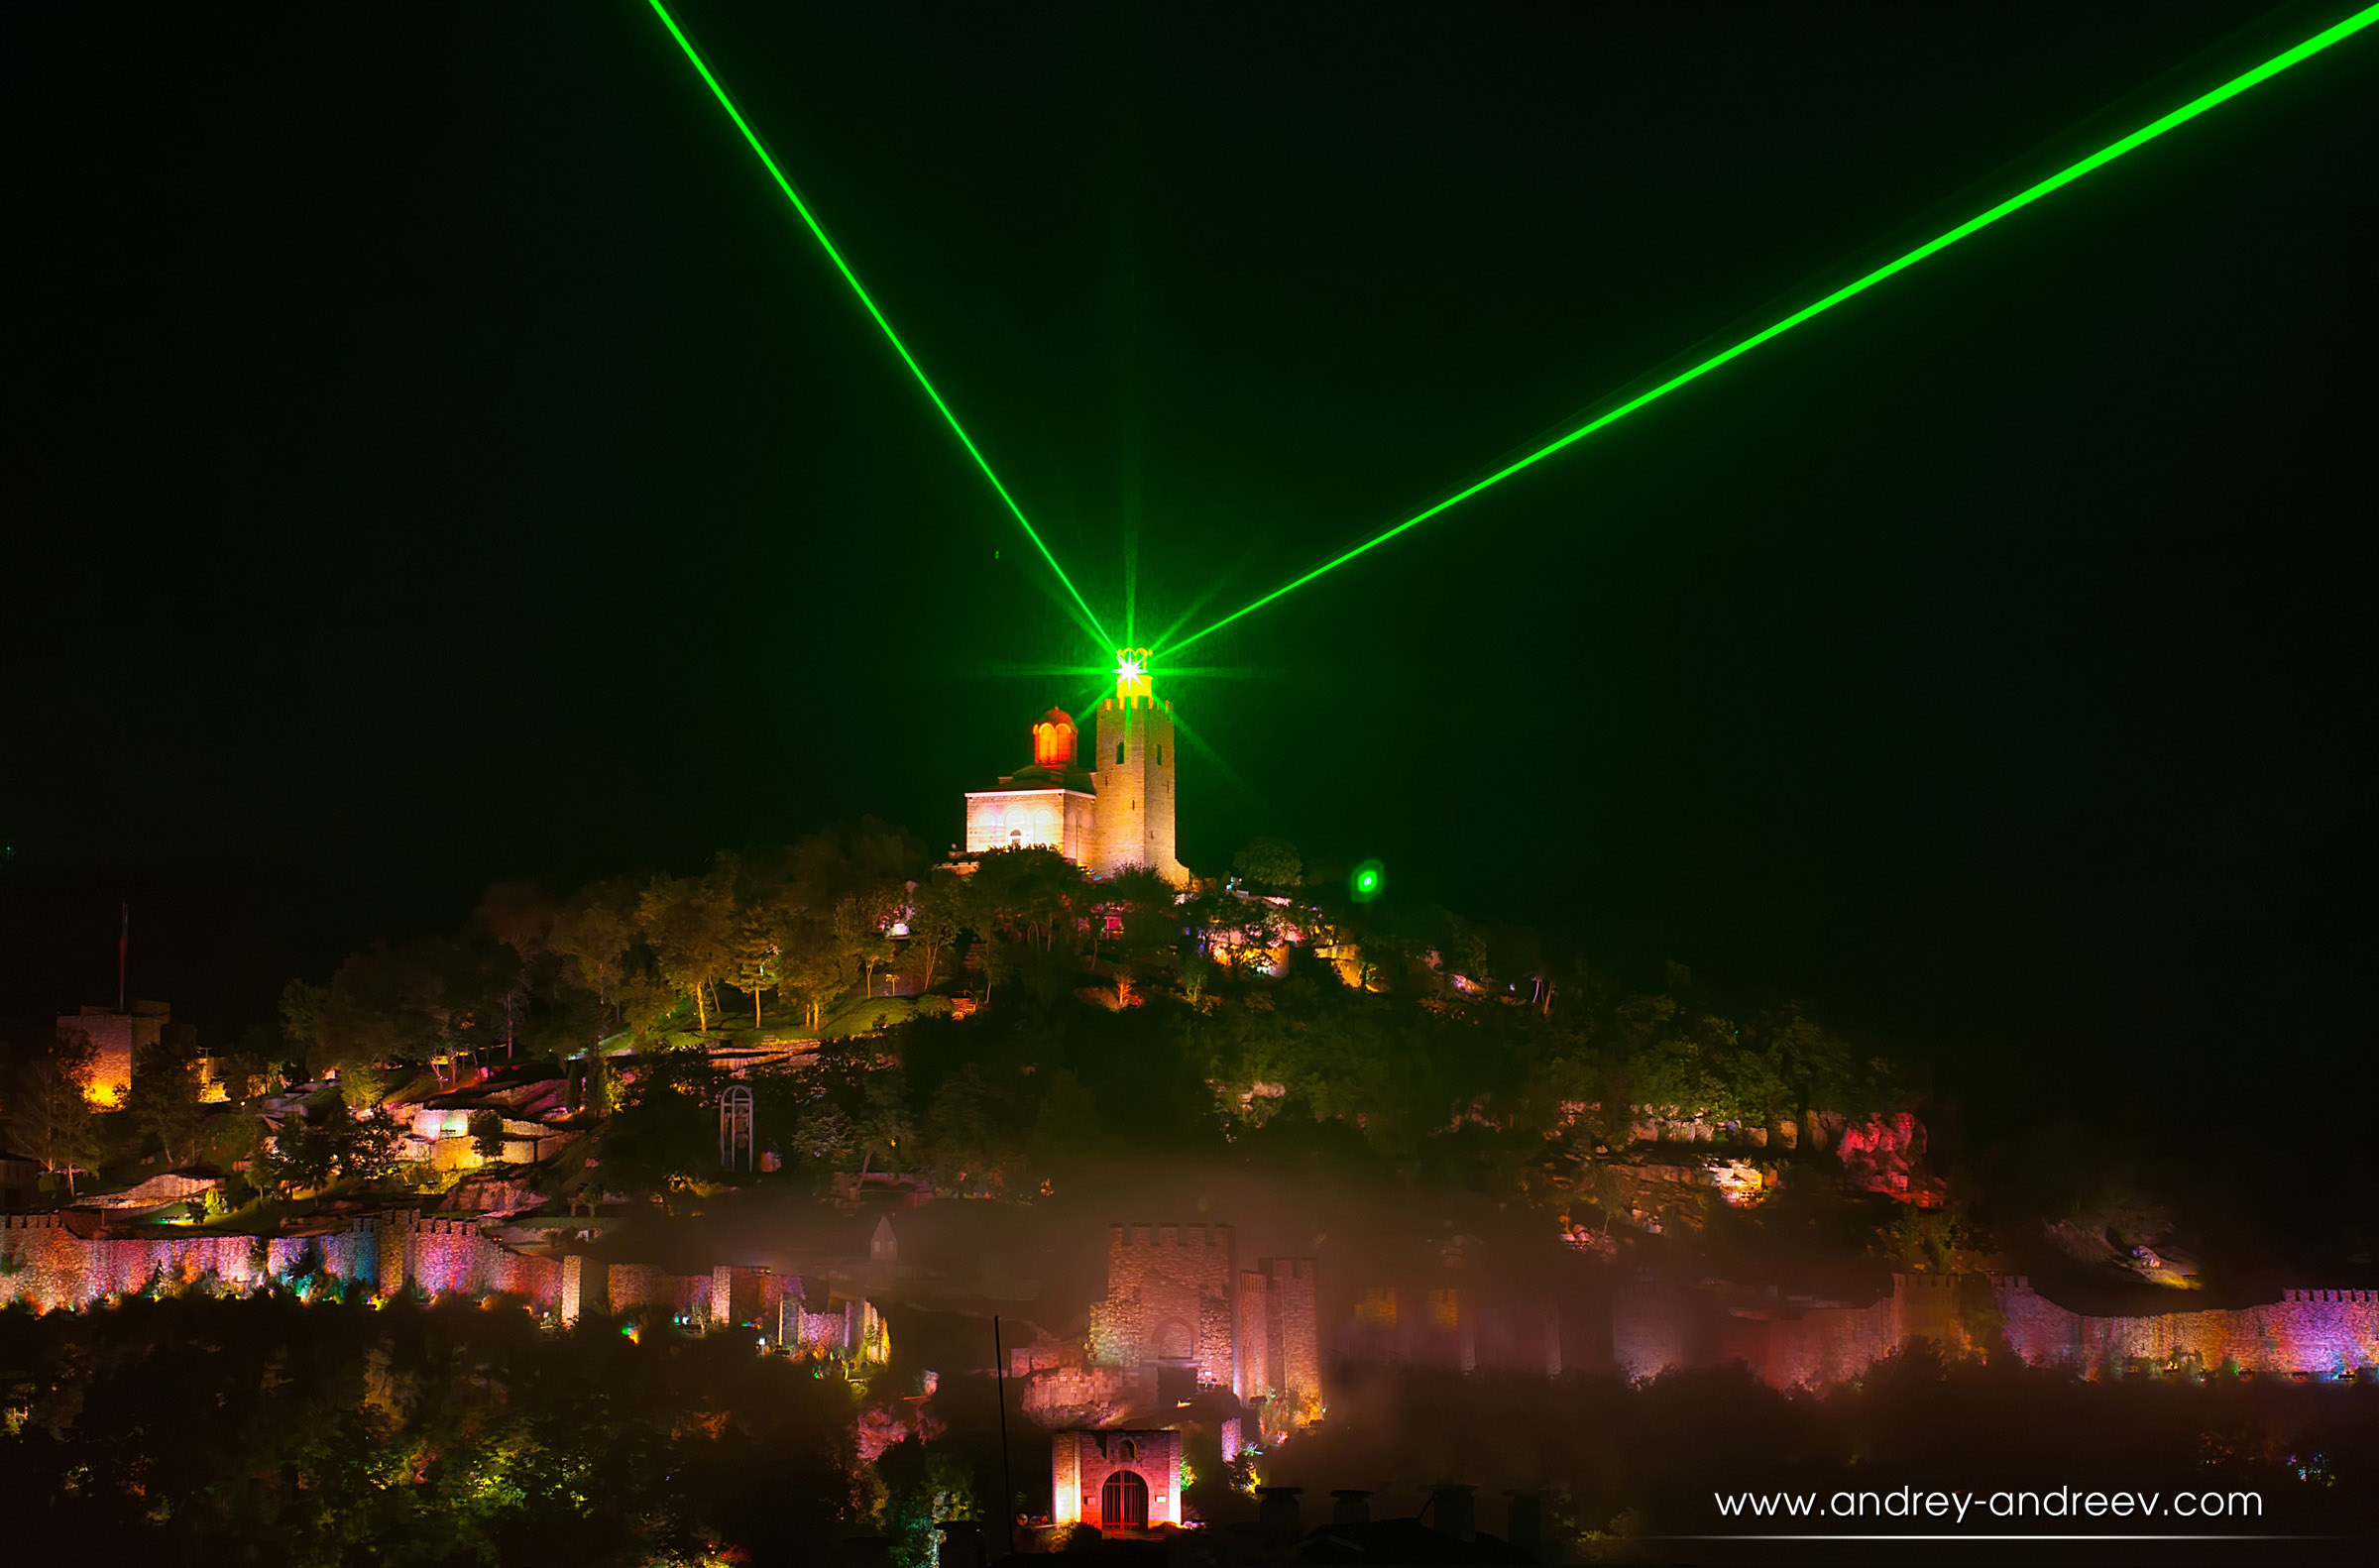 A moment form the Sound and Light show on Tsarevets, Veliko Tarnovo, Bulgaria